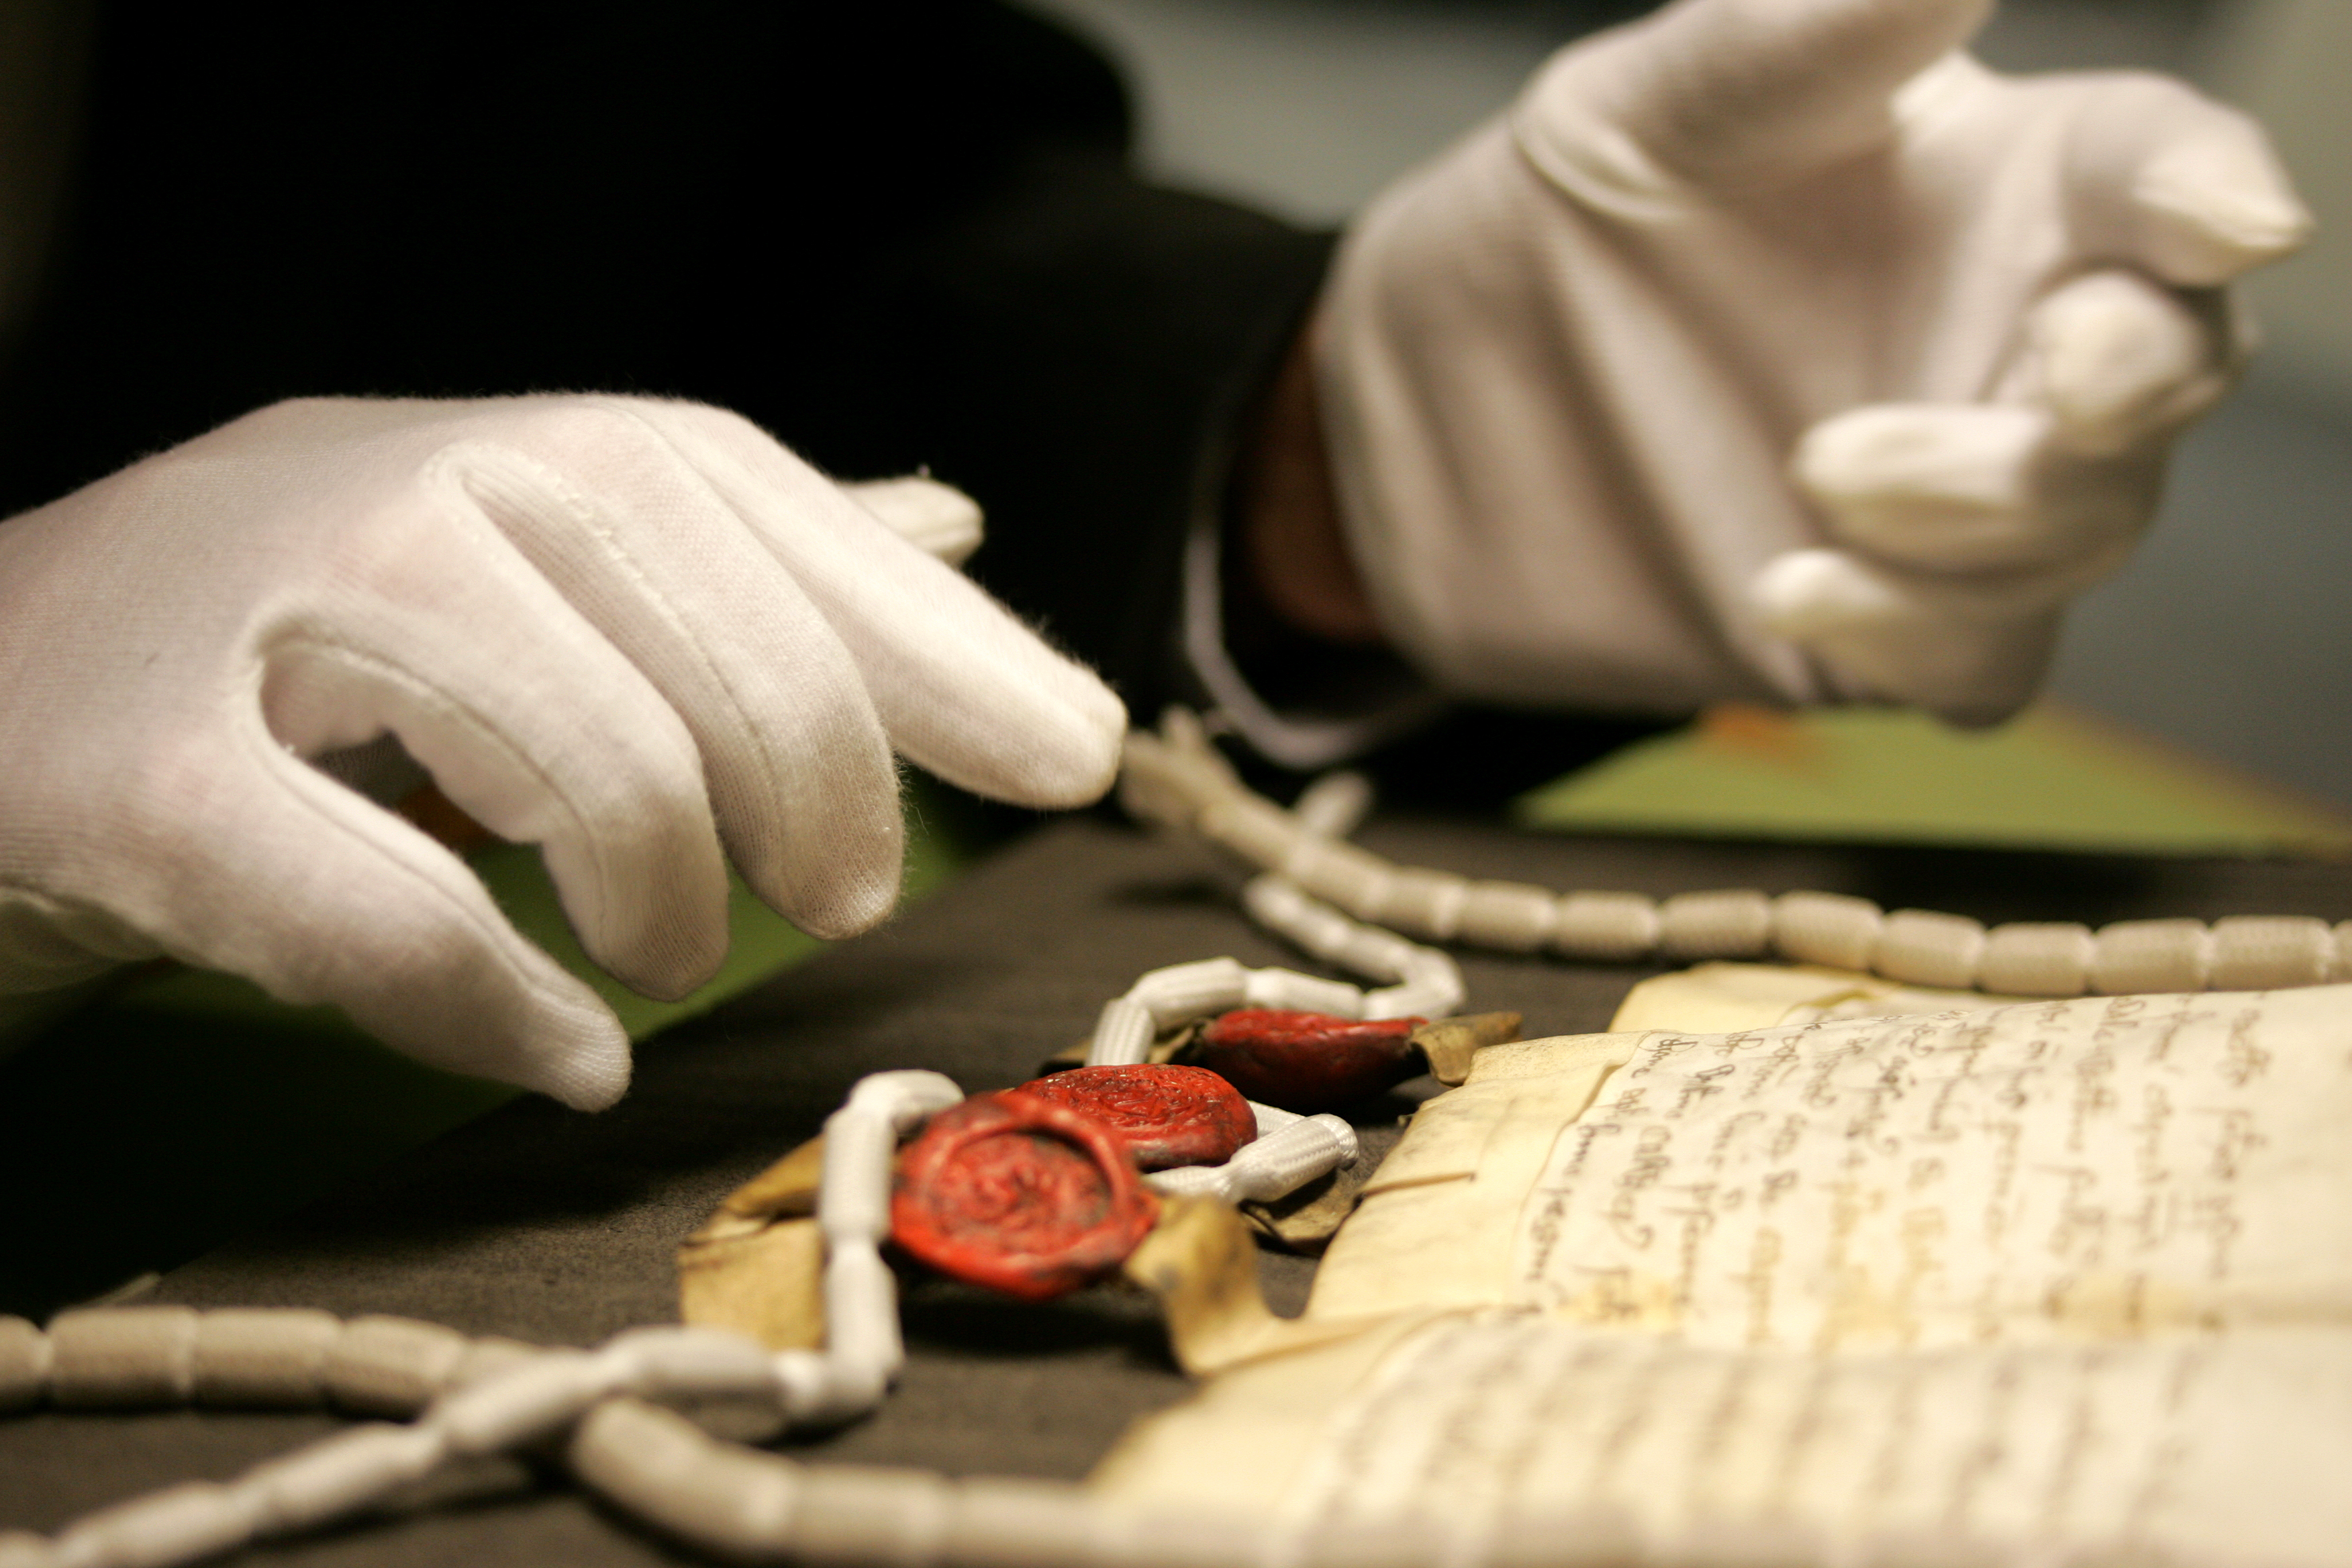 A manuscript and seals being examined at the archives